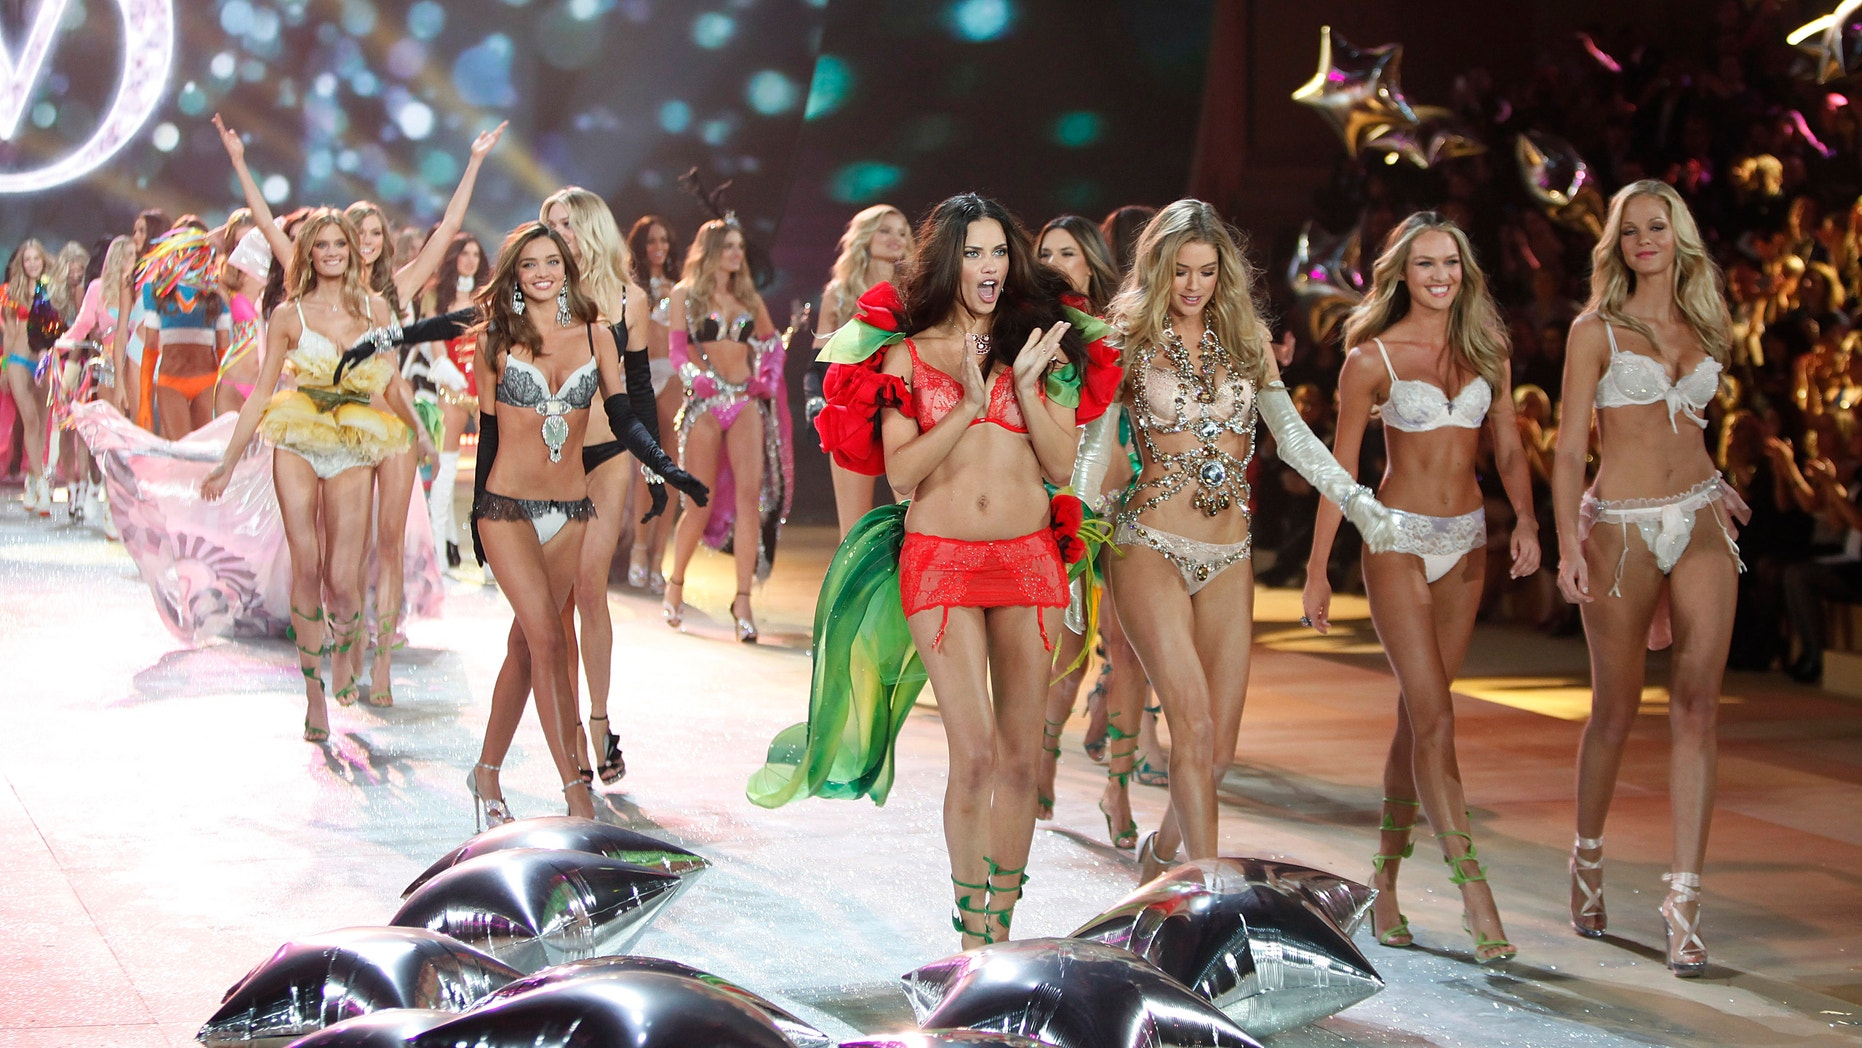 Models present a creation during the Victoria's Secret Fashion Show in New York November 7, 2012.